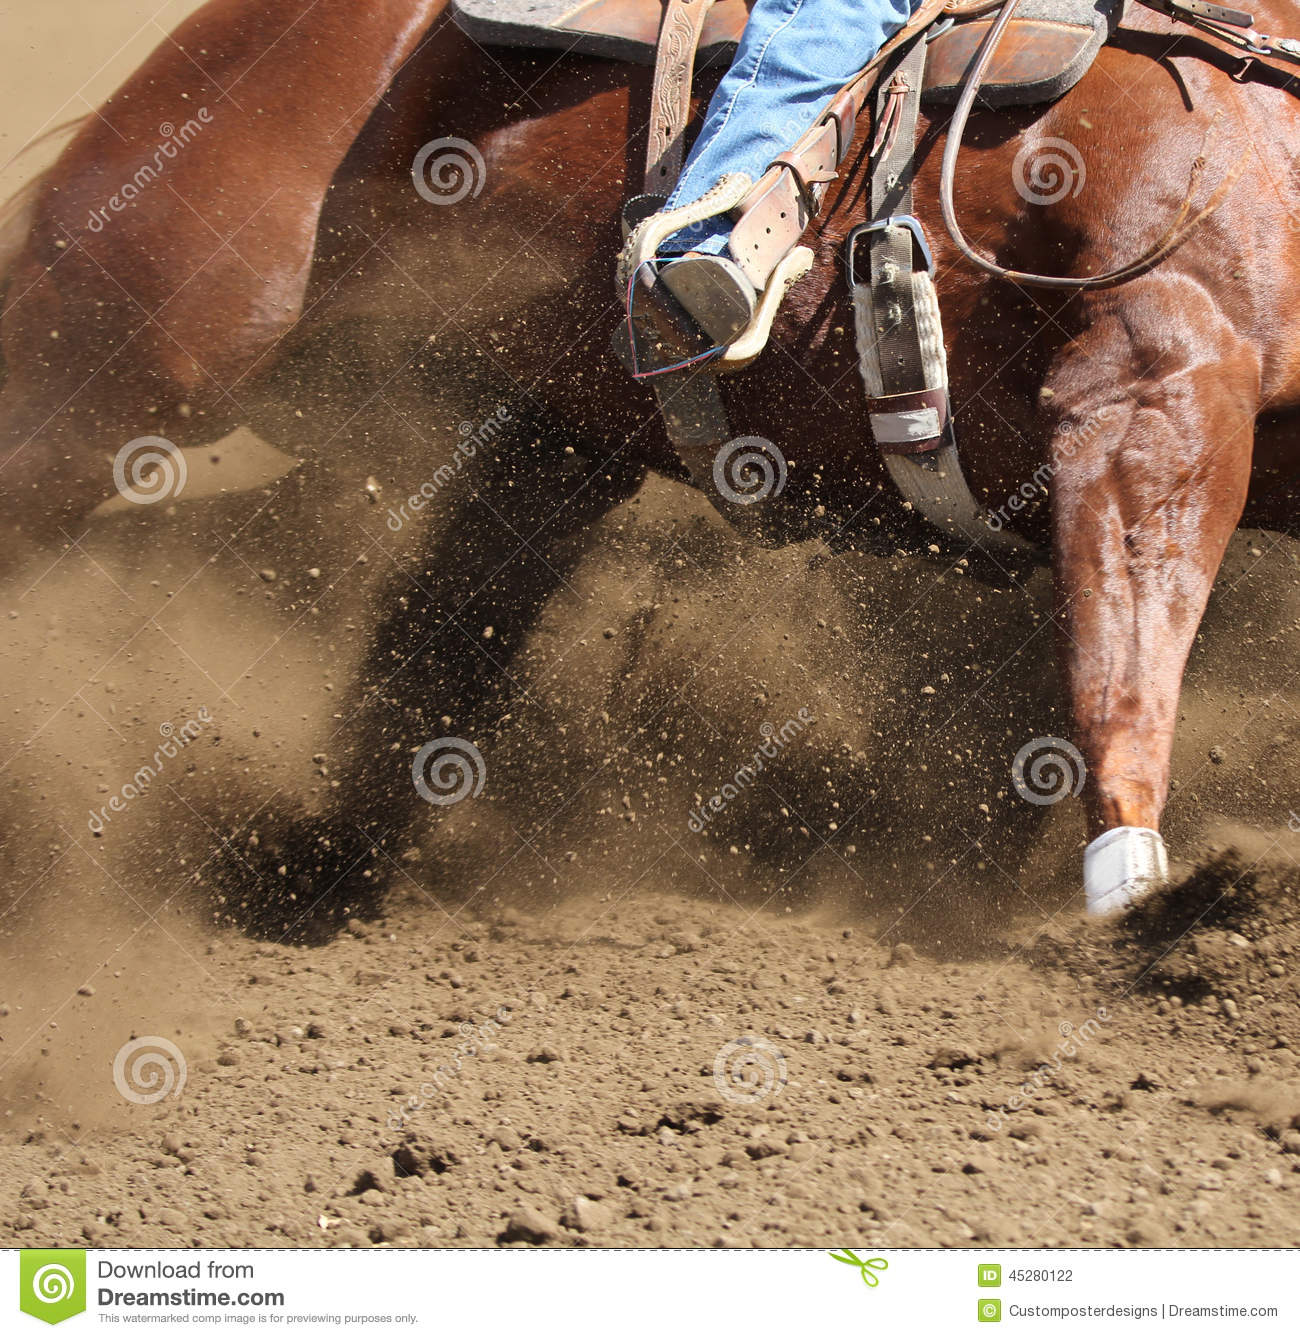 Download A Horse And Rider Moving Fast With Dirt Flying. Stock Photo - Image of gallop, action: 45280122